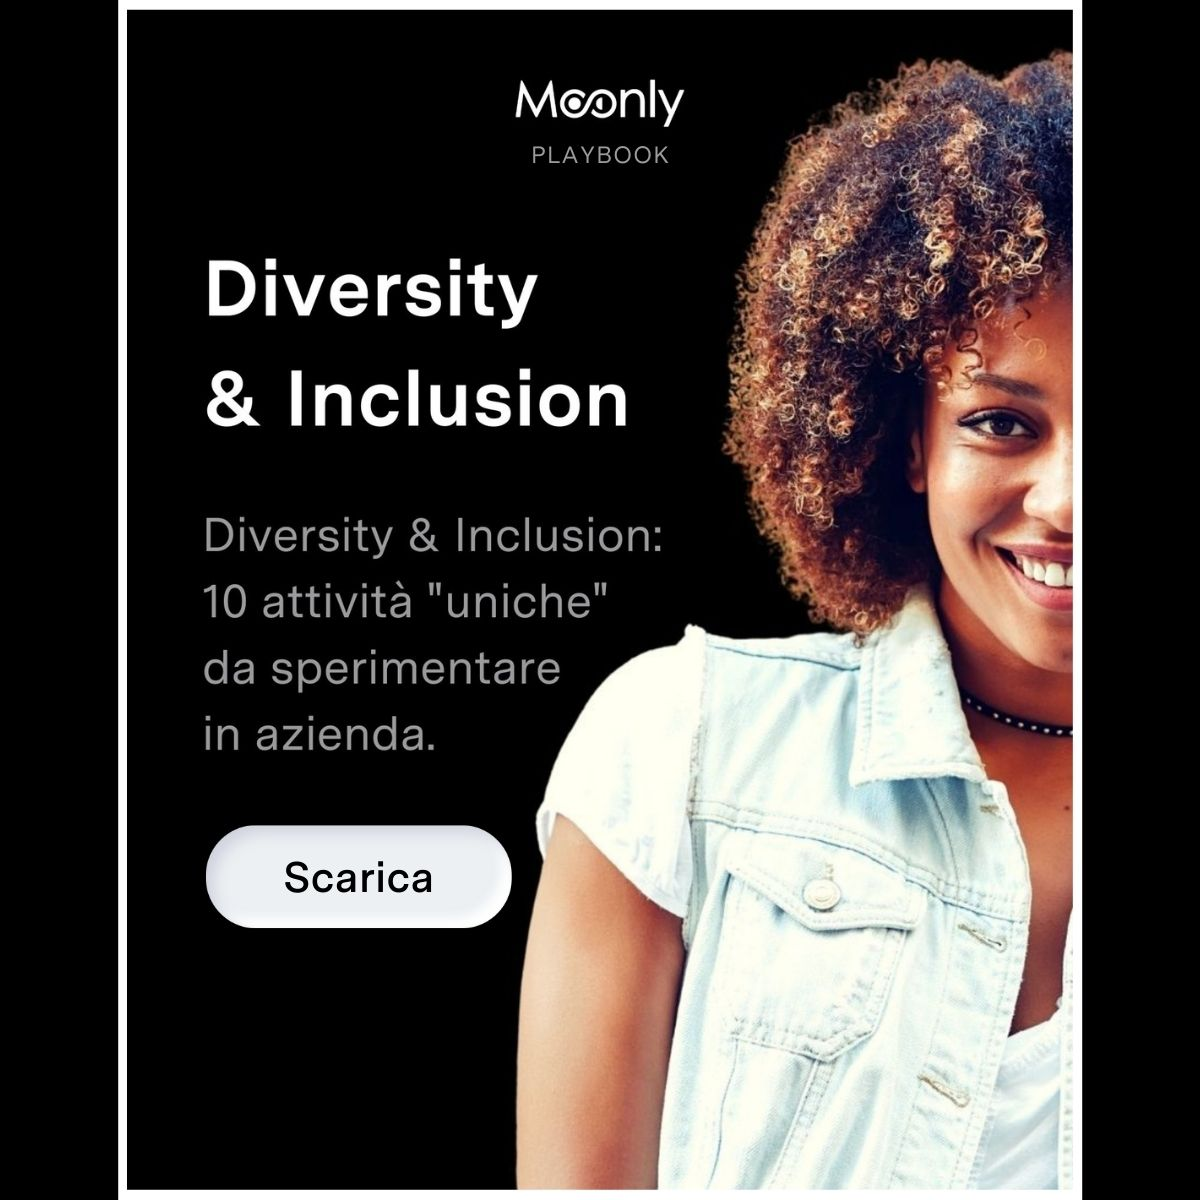 Playbook Diversity & Inclusion